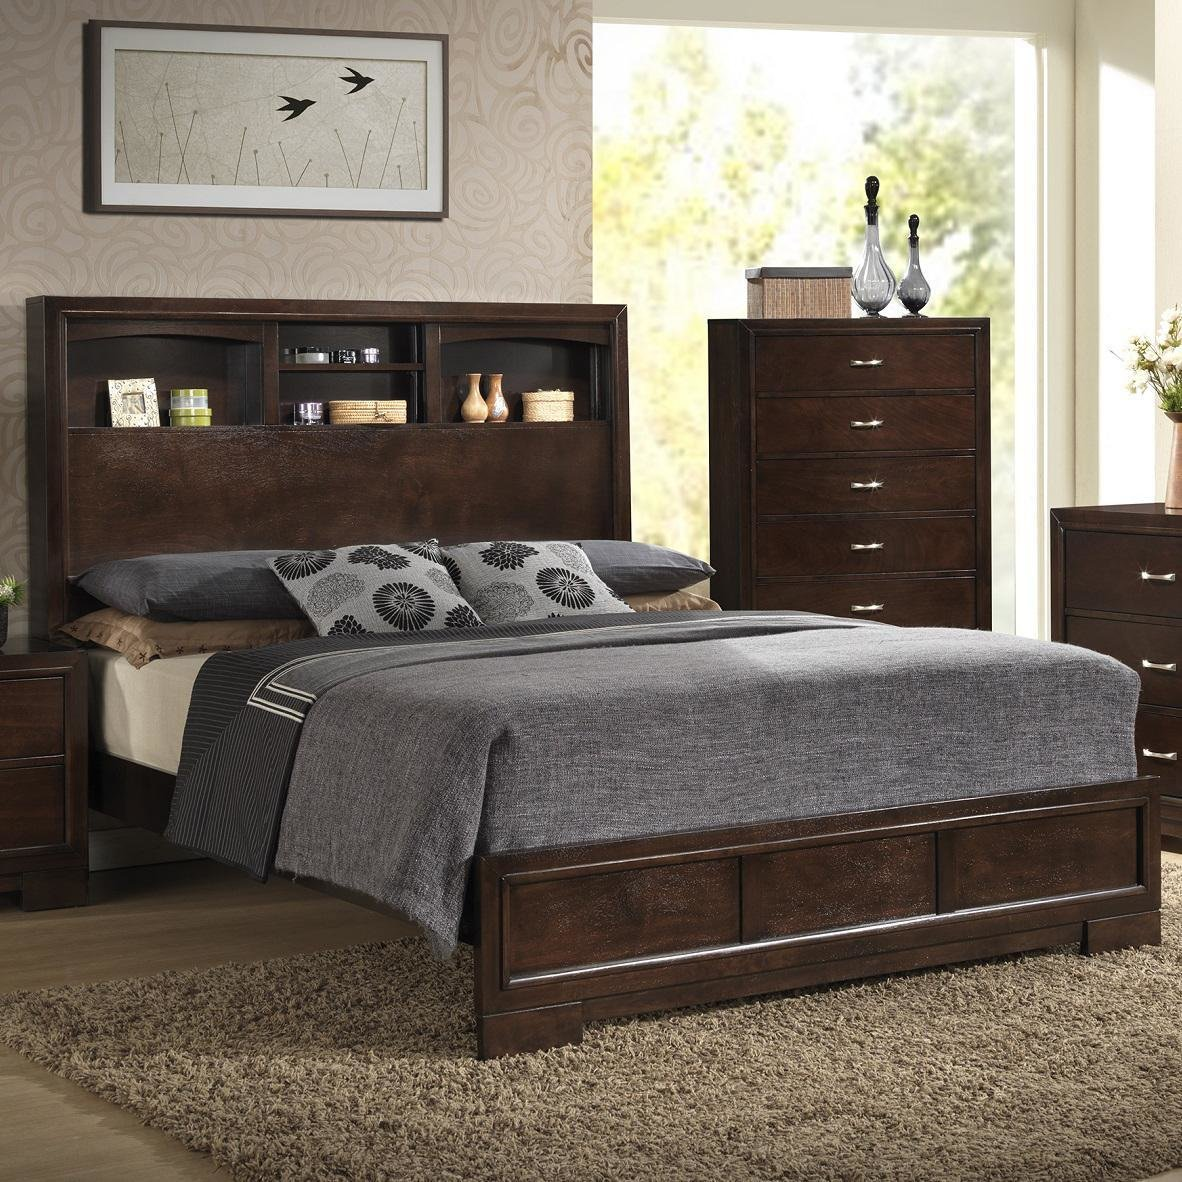 Best Lifestyle B**K** Contemporary Queen Bookcase Bed With 4 With Pictures